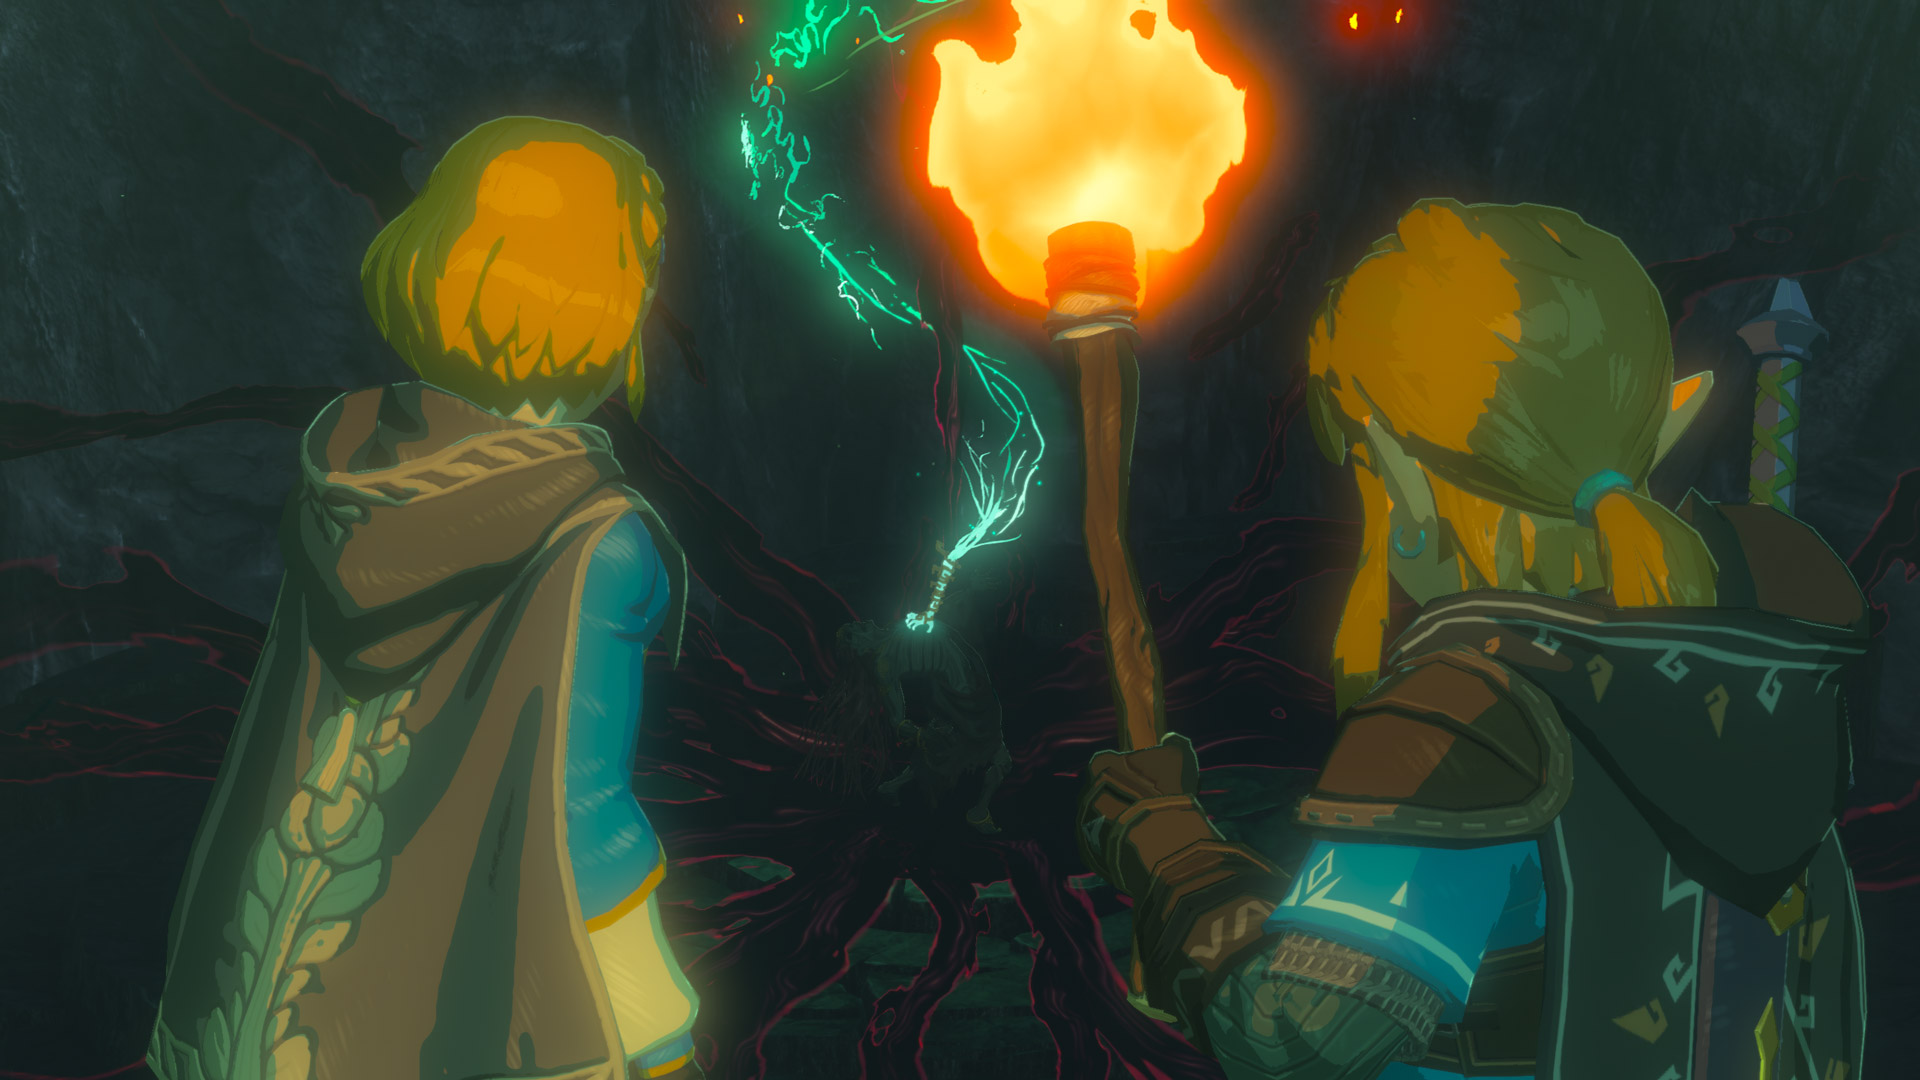 Link and Zelda stare at a mysterious glowing energy source in a screenshot from The Legend of Zelda: Breath of the Wild's sequel